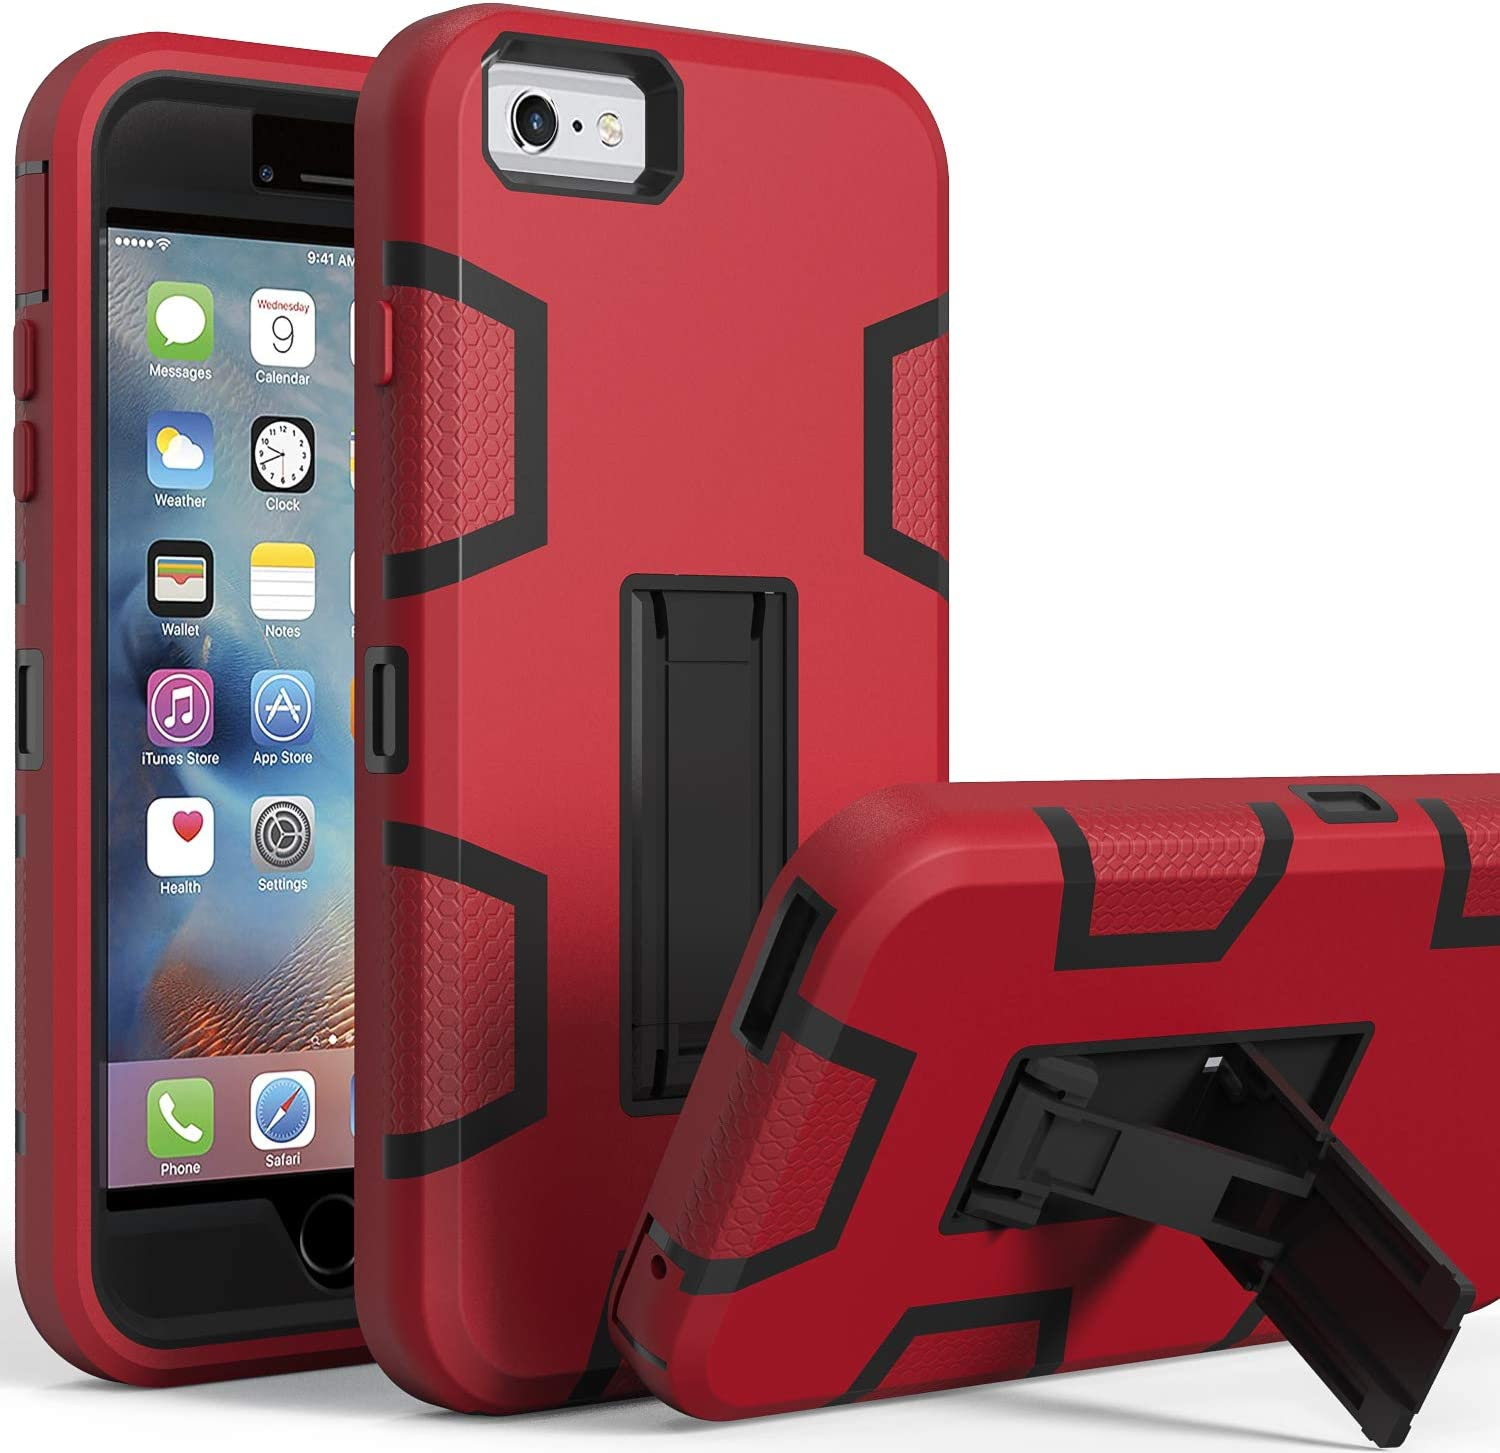 iPhone 6s Plus Case,iPhone 6 Plus Case,Kickstand Case for iPhone 6s Plus, Anti-Scratch Anti-Fingerprint Heavy Duty Protection Shockproof Rugged Cover for 5.5inch iPhone 6s Plus-Red